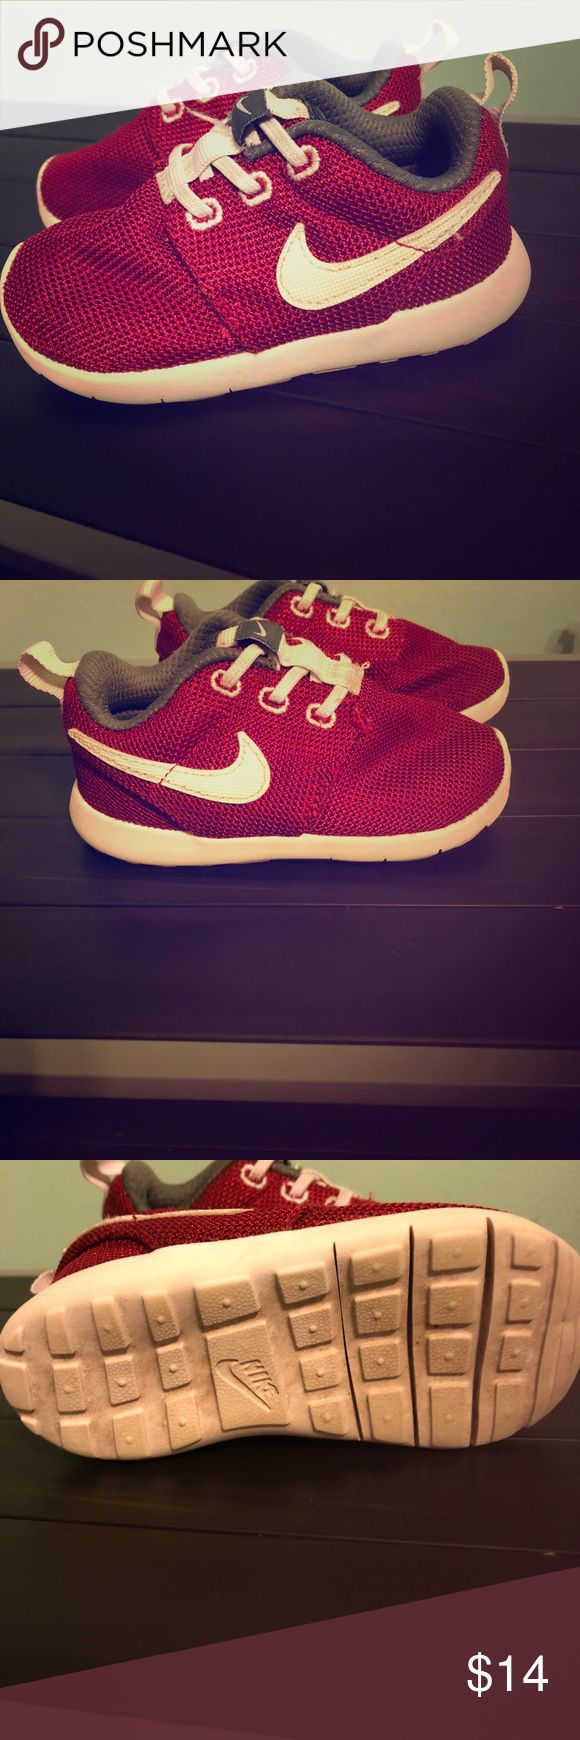 Toddler Nike shoes Toddler red Nike shoes. Size 7 Nike Shoes Sneakers